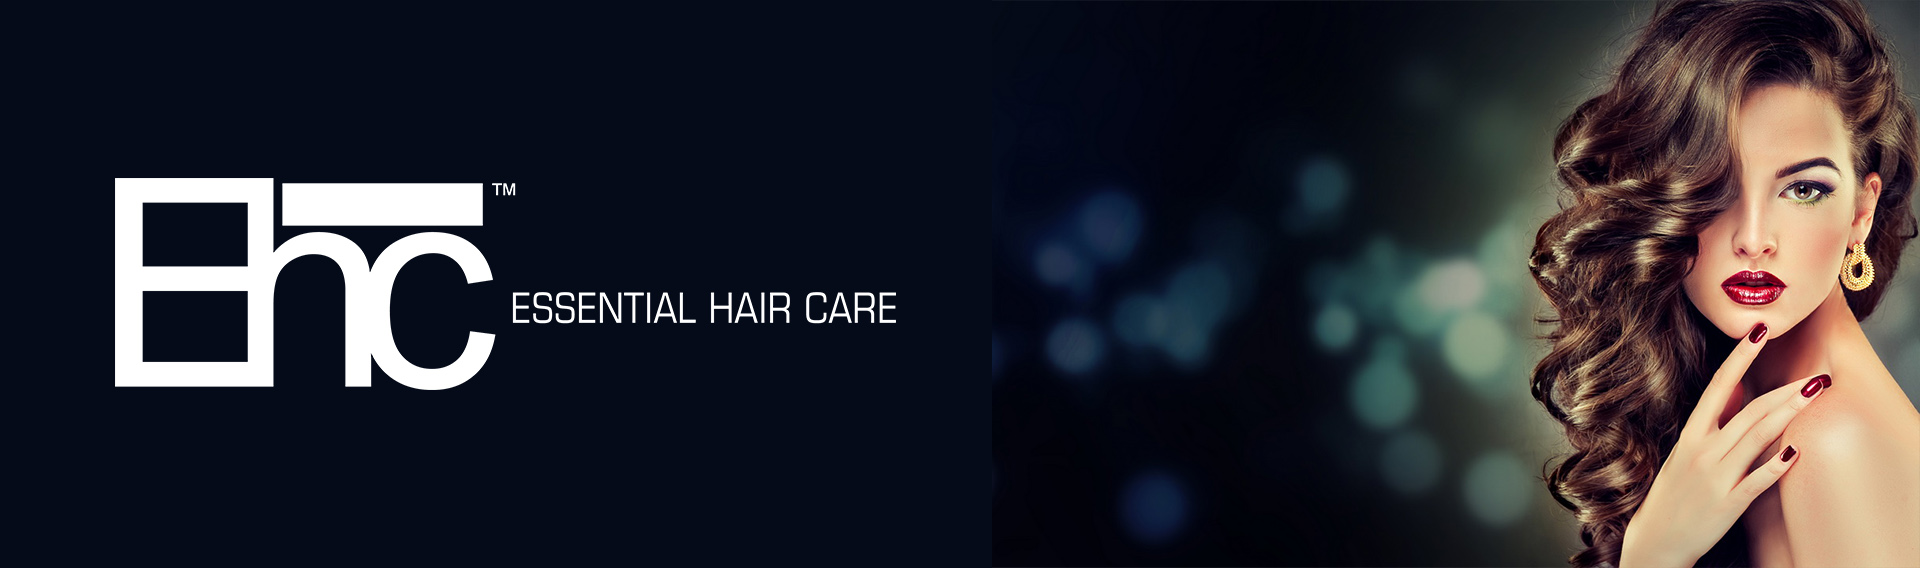 Essential Hair Care